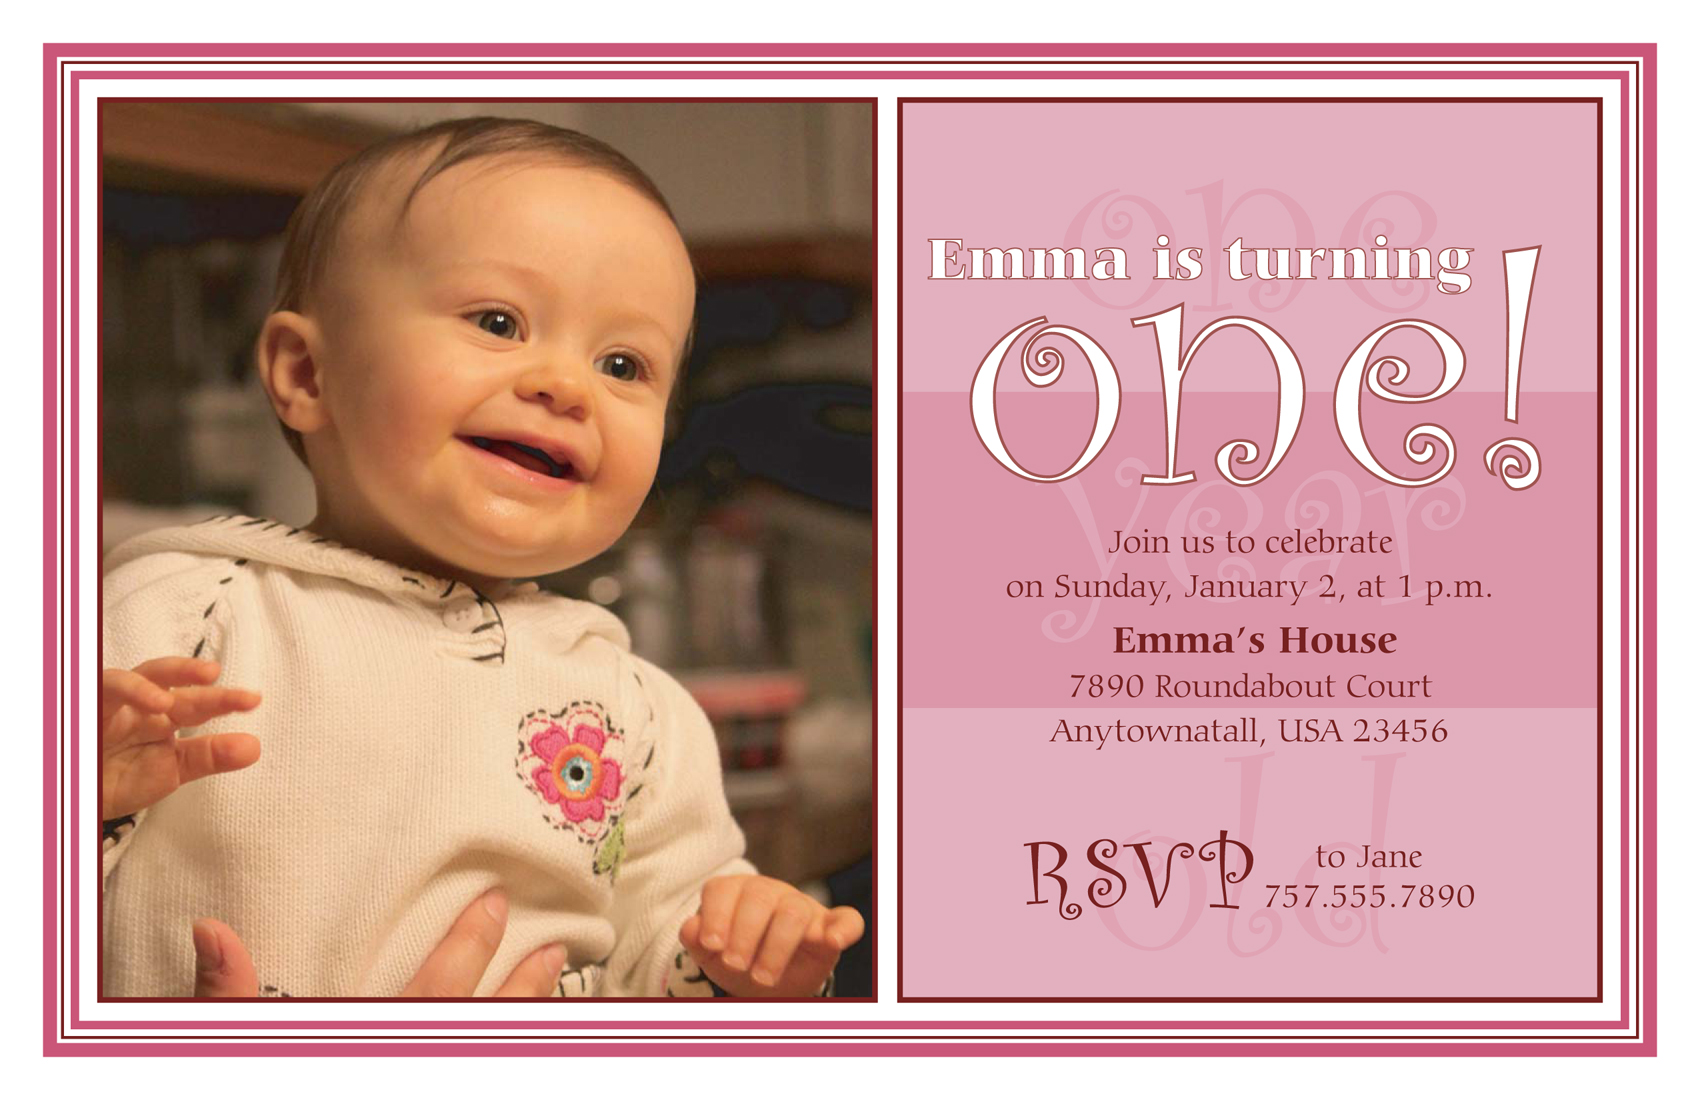 photo birthday invitations 1st birthday ; 1st-birthday-party-invitations-with-divine-invitations-for-resulting-an-extraordinary-outlook-of-your-Birthday-Invitation-Templates-9